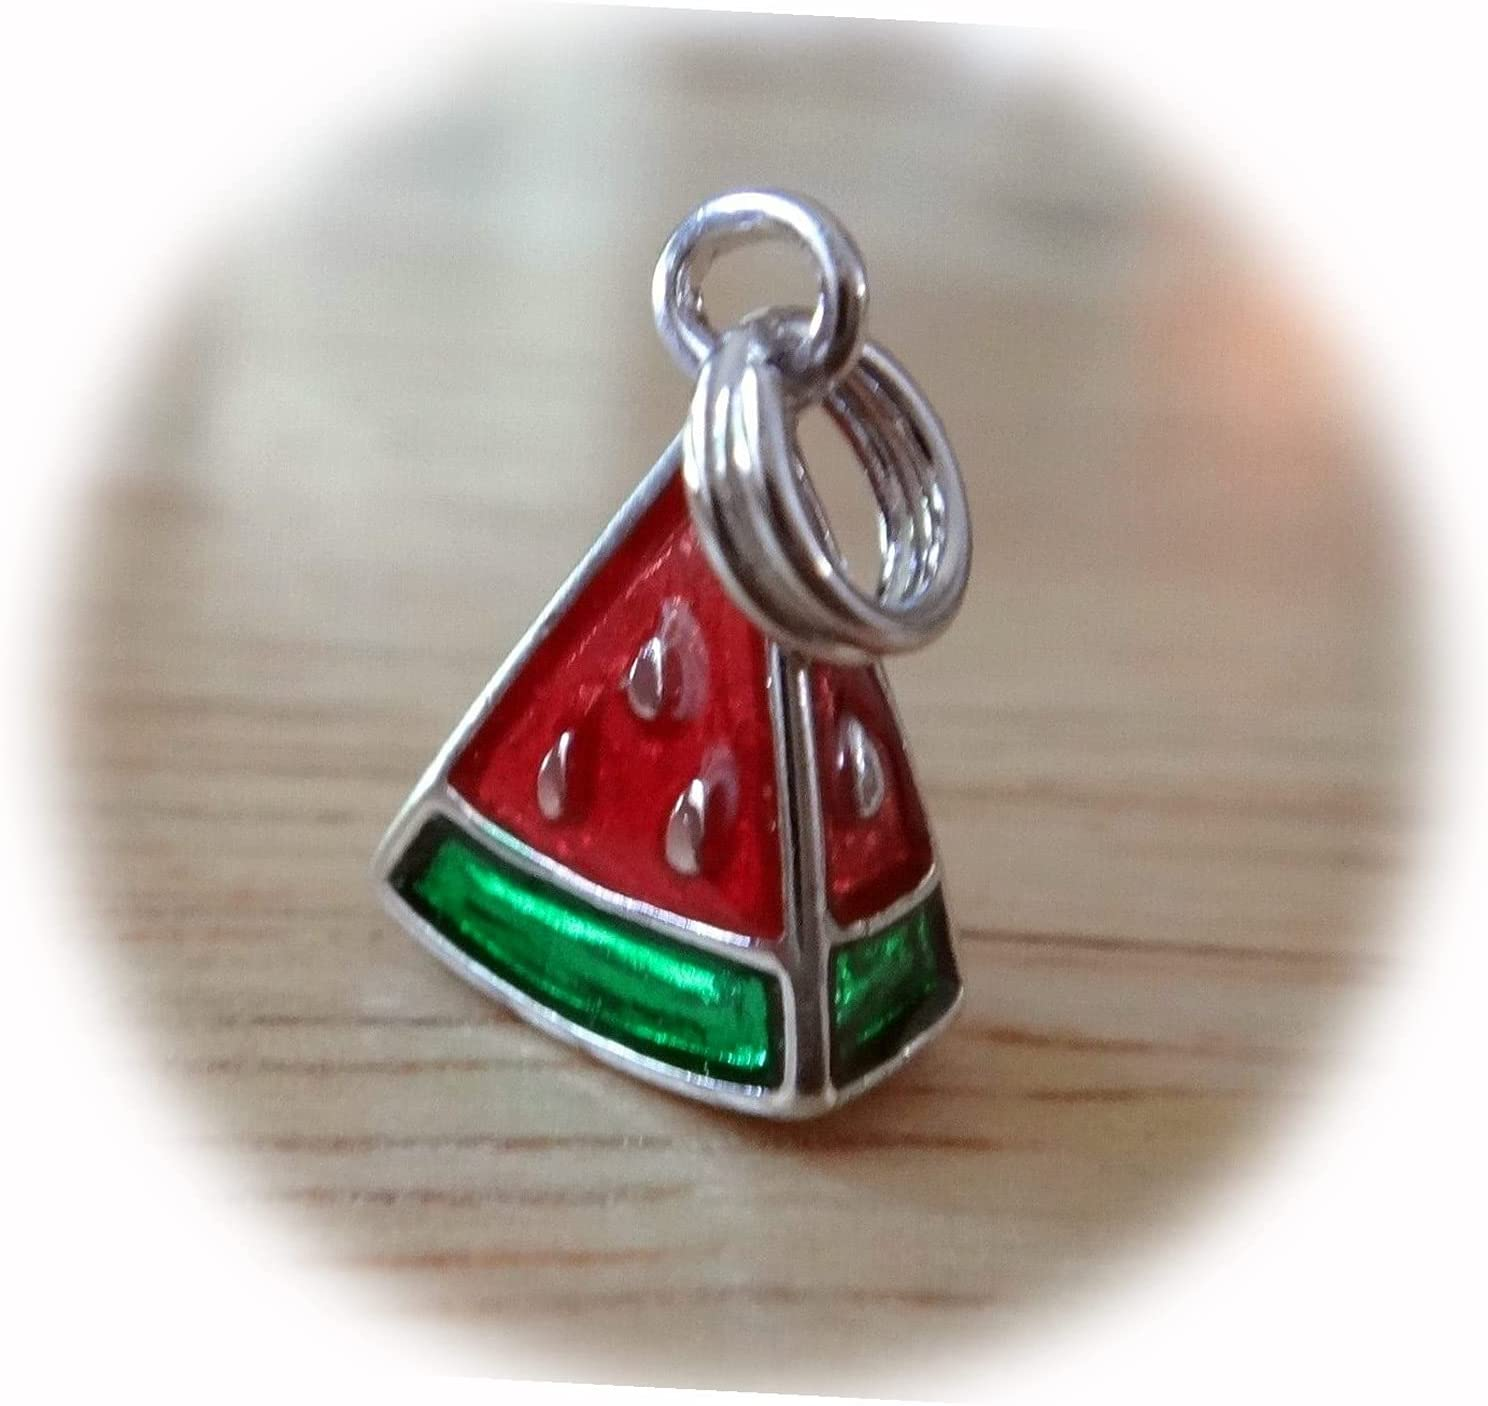 New 9x14mm 3D Pinkish Red Enamel Sterling Green Recommended Watermelon 4 years warranty Sil